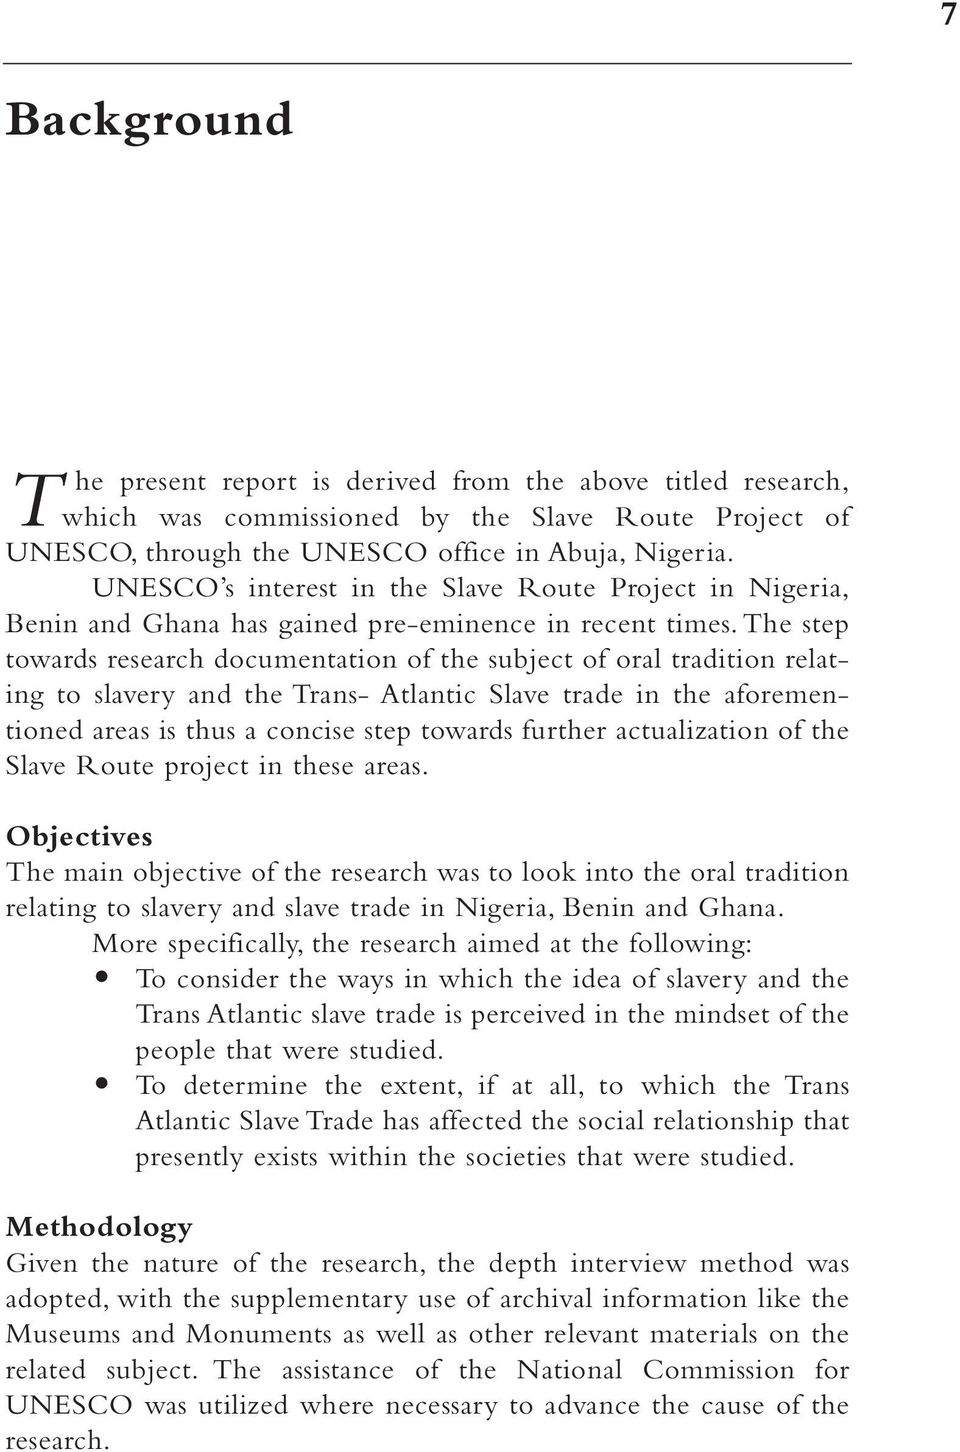 the step towards research documentation of the subject of oral tradition relating to slavery and the Trans- Atlantic Slave trade in the aforementioned areas is thus a concise step towards further